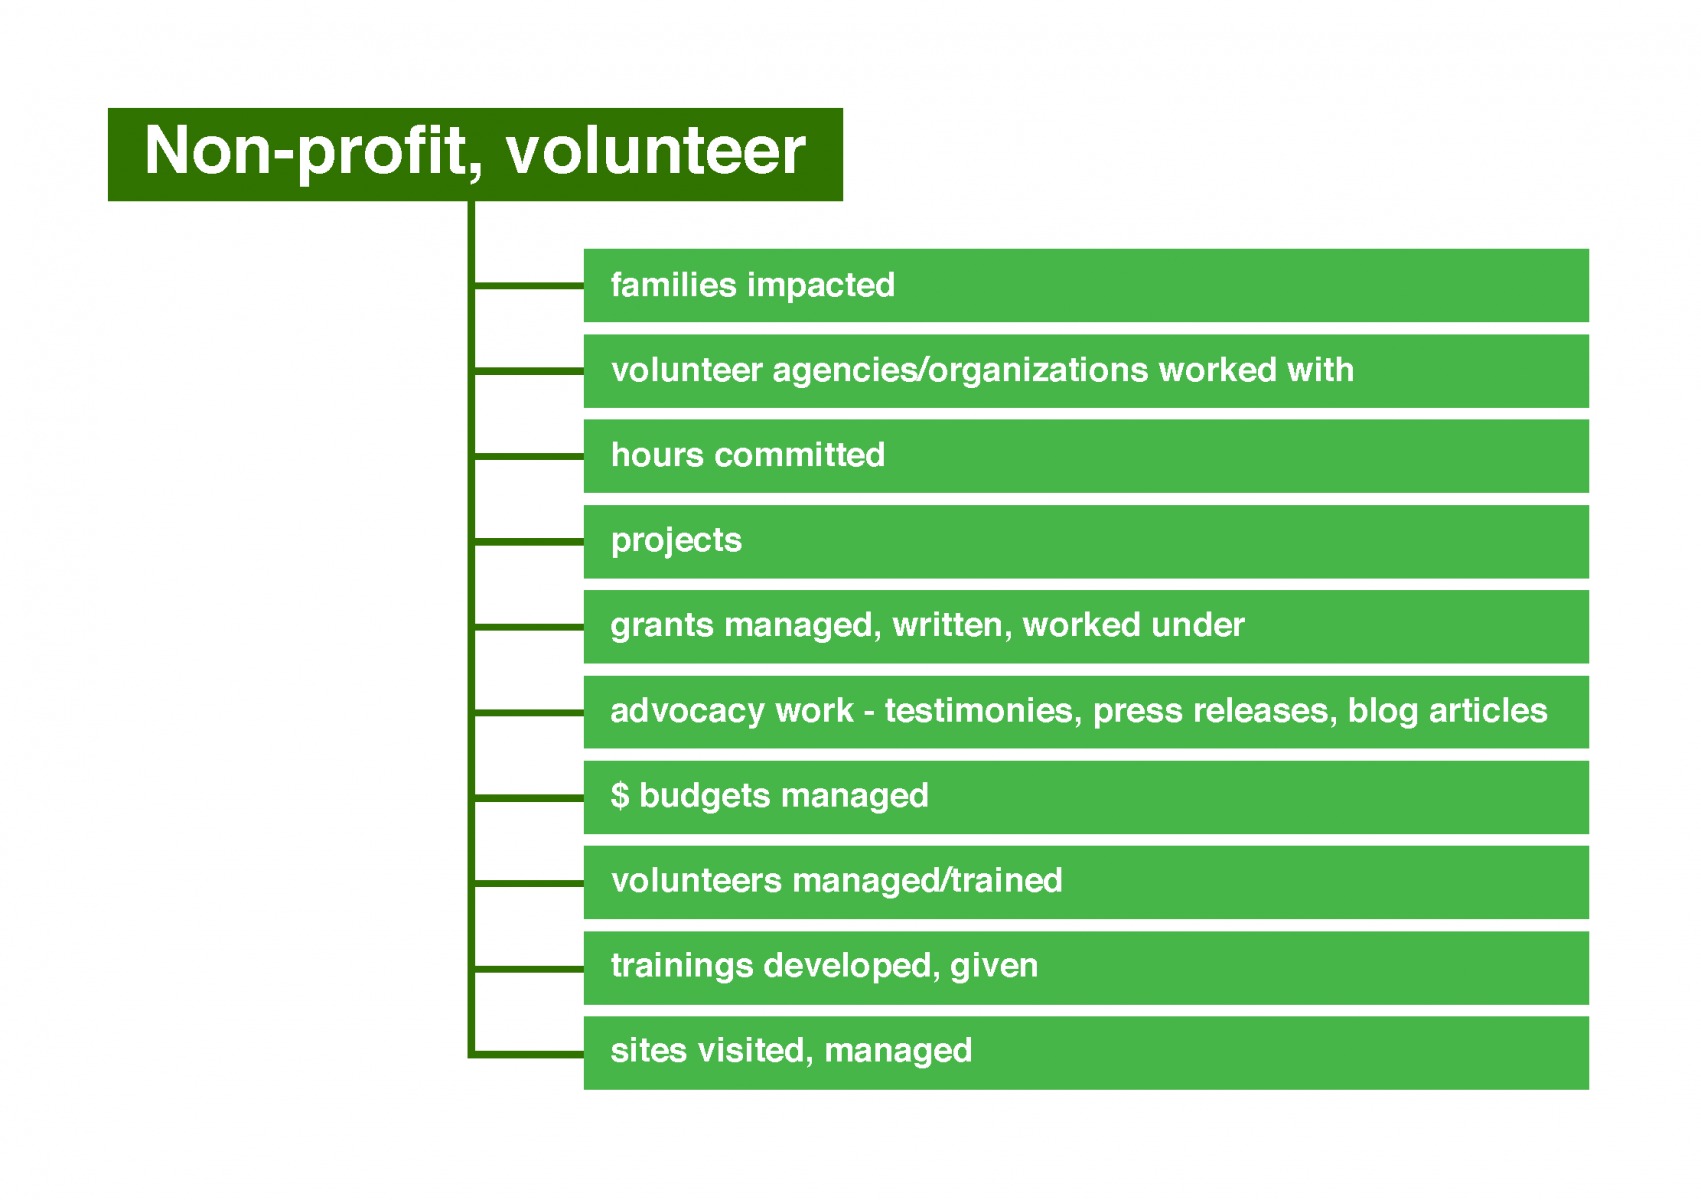 Potential numbers for non-profit and volunteer